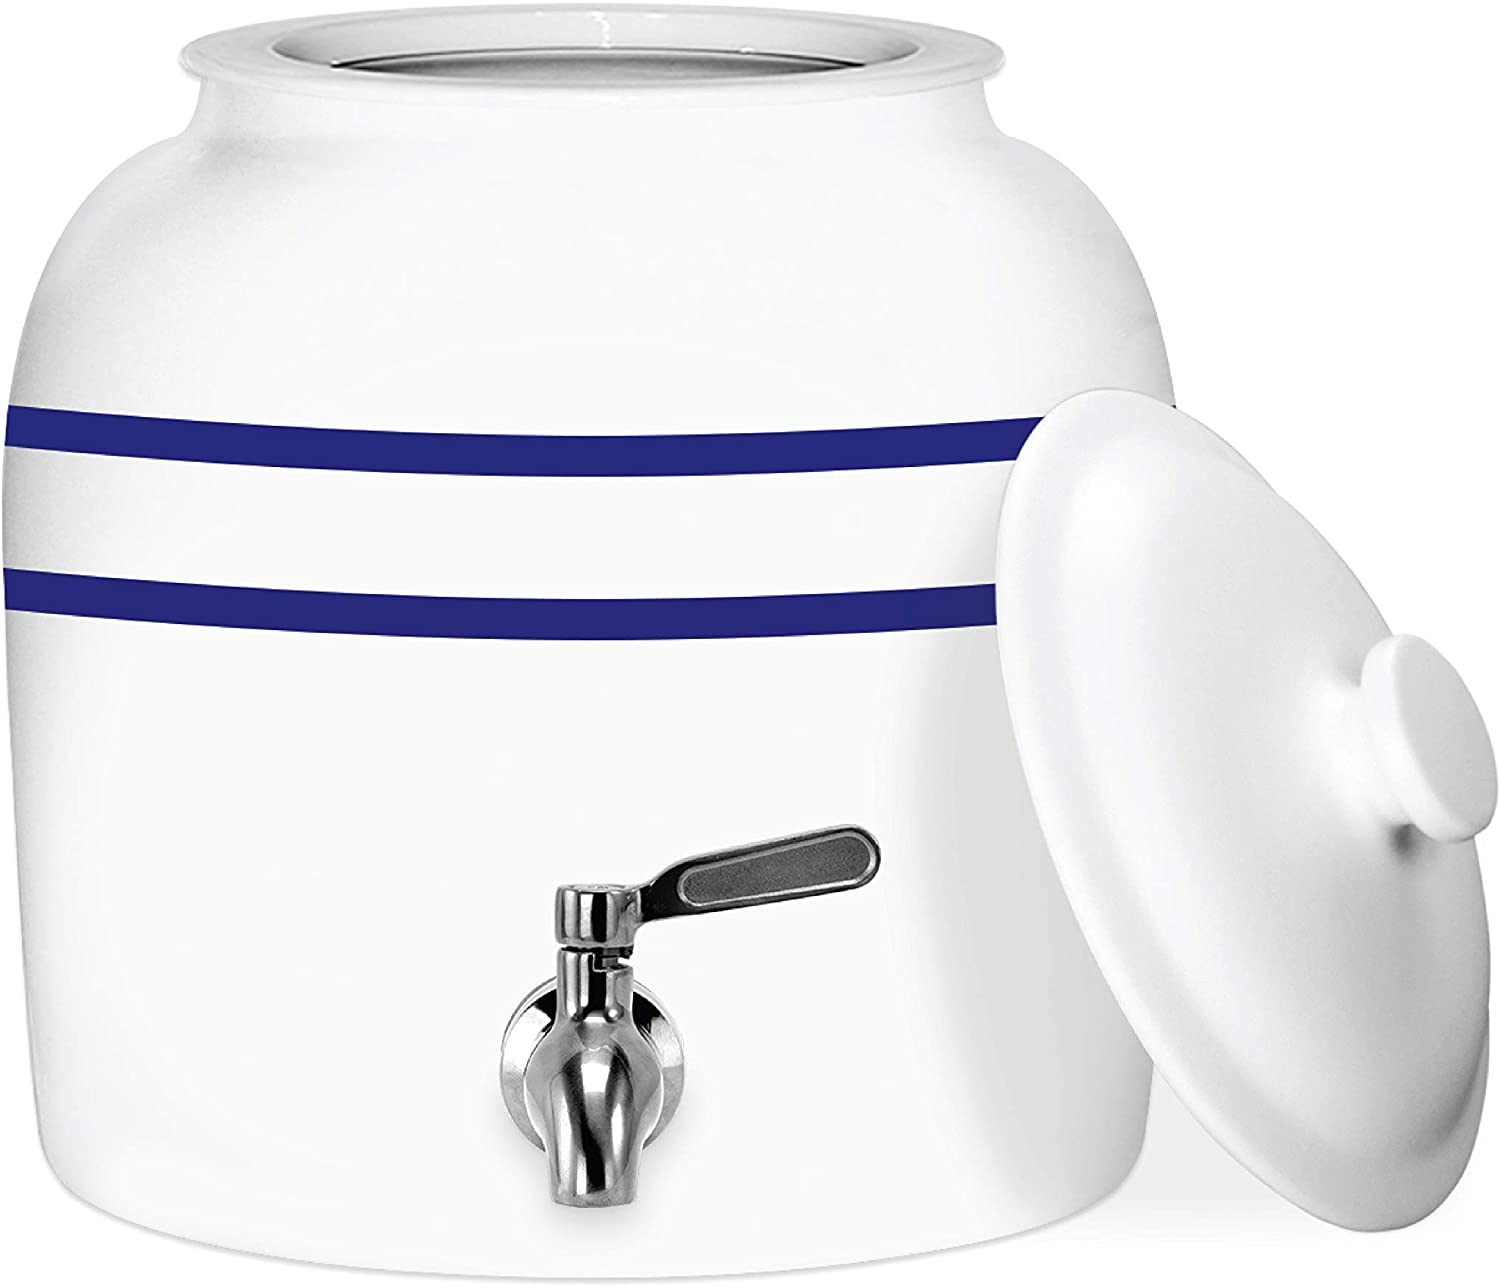 Geo Sports Porcelain Ceramic Crock Water Dispenser, Stainless Steel Faucet, Valve and Ceramic Lid Included. Fits 3 or 5 Gallon Jugs. BPA & Lead Free (Blue Stripe)